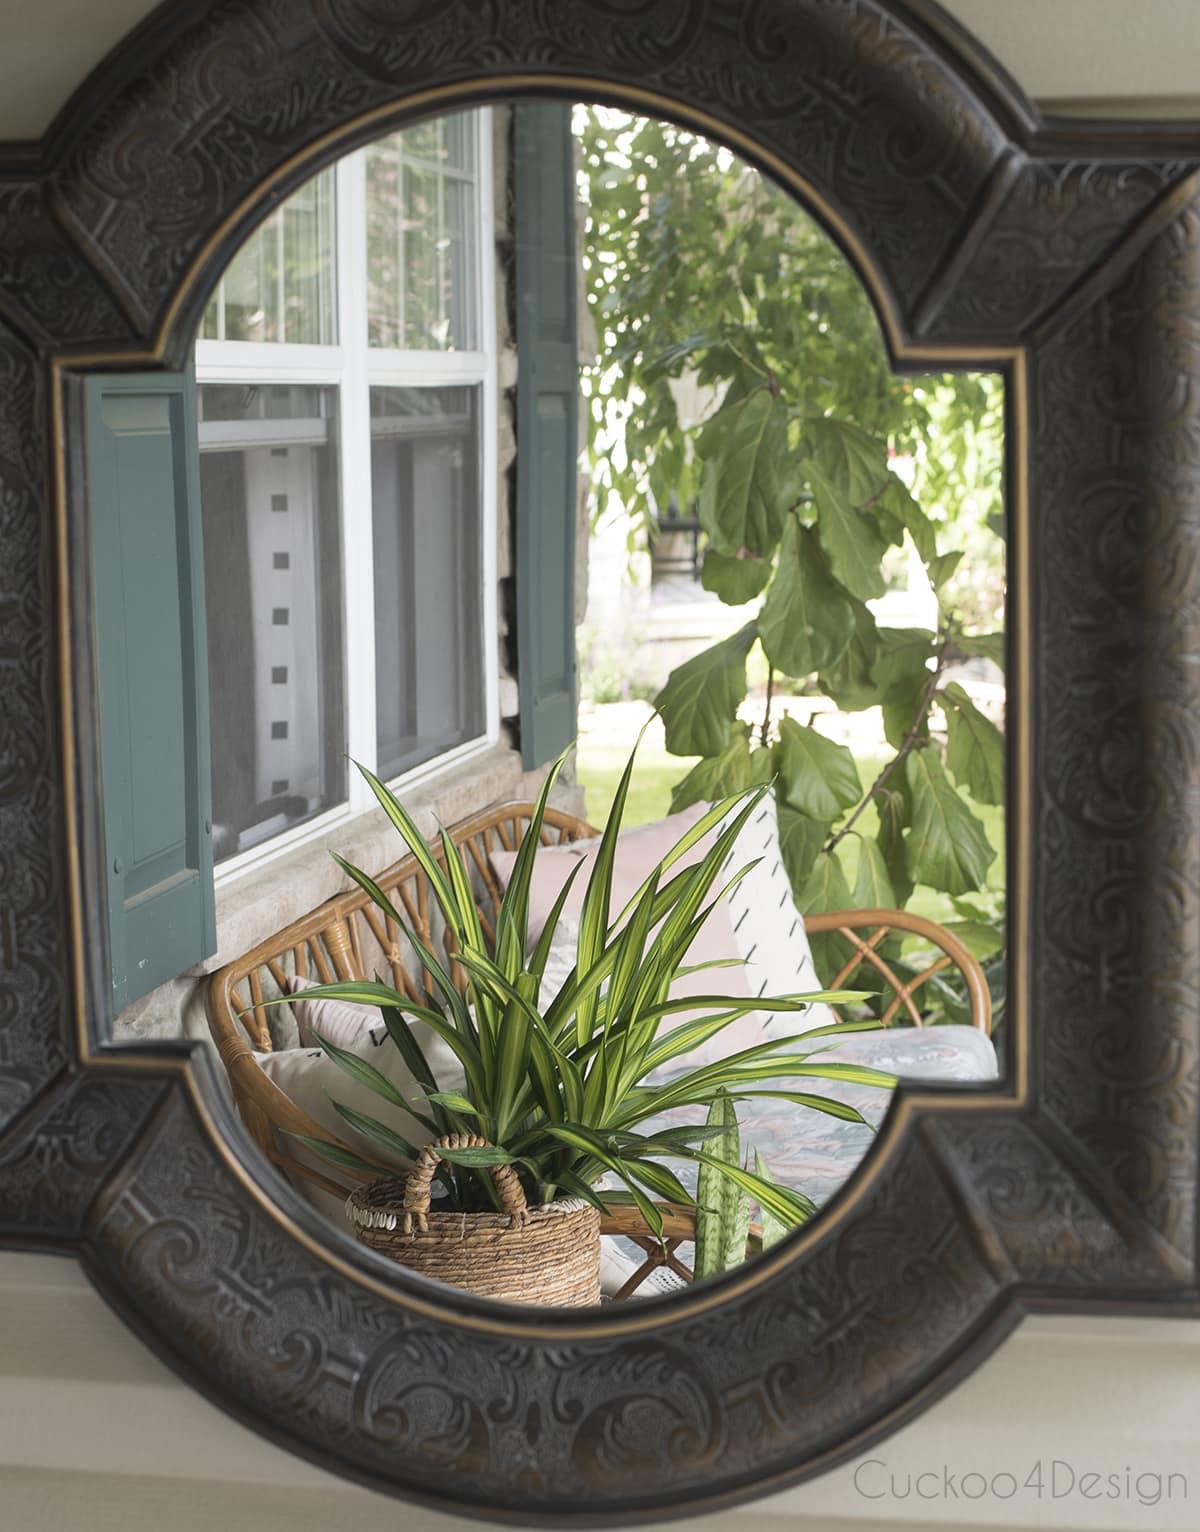 mirror on front porch with rattan sofa